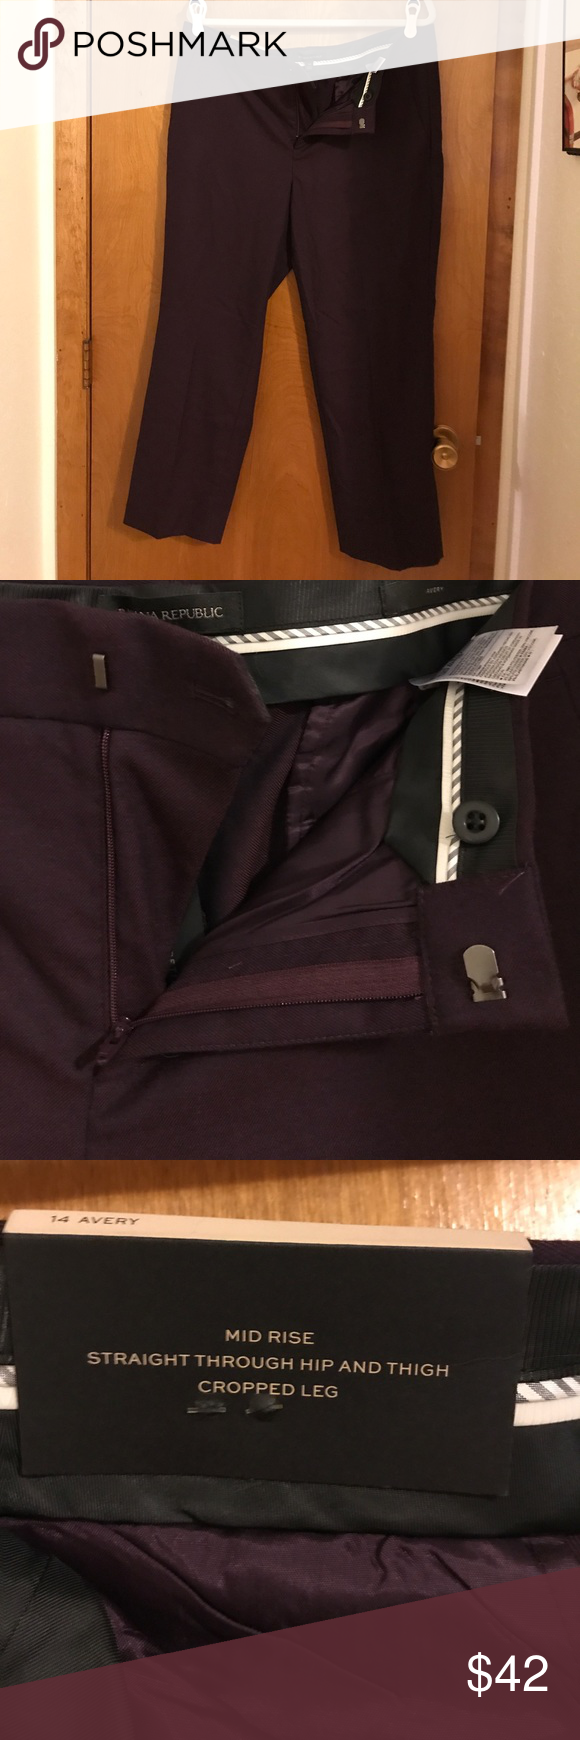 Banana Republic Avery Pants Banana Republic Avery Pants. Size 14. Mid rise. Straight through hip and thigh. Cropped leg. Has both button and hook and eye closures. Color is a gorgeous plum. Brand new with tags. See pictures for more details. Reasonable offers welcomed. Bundle and save! Banana Republic Pants